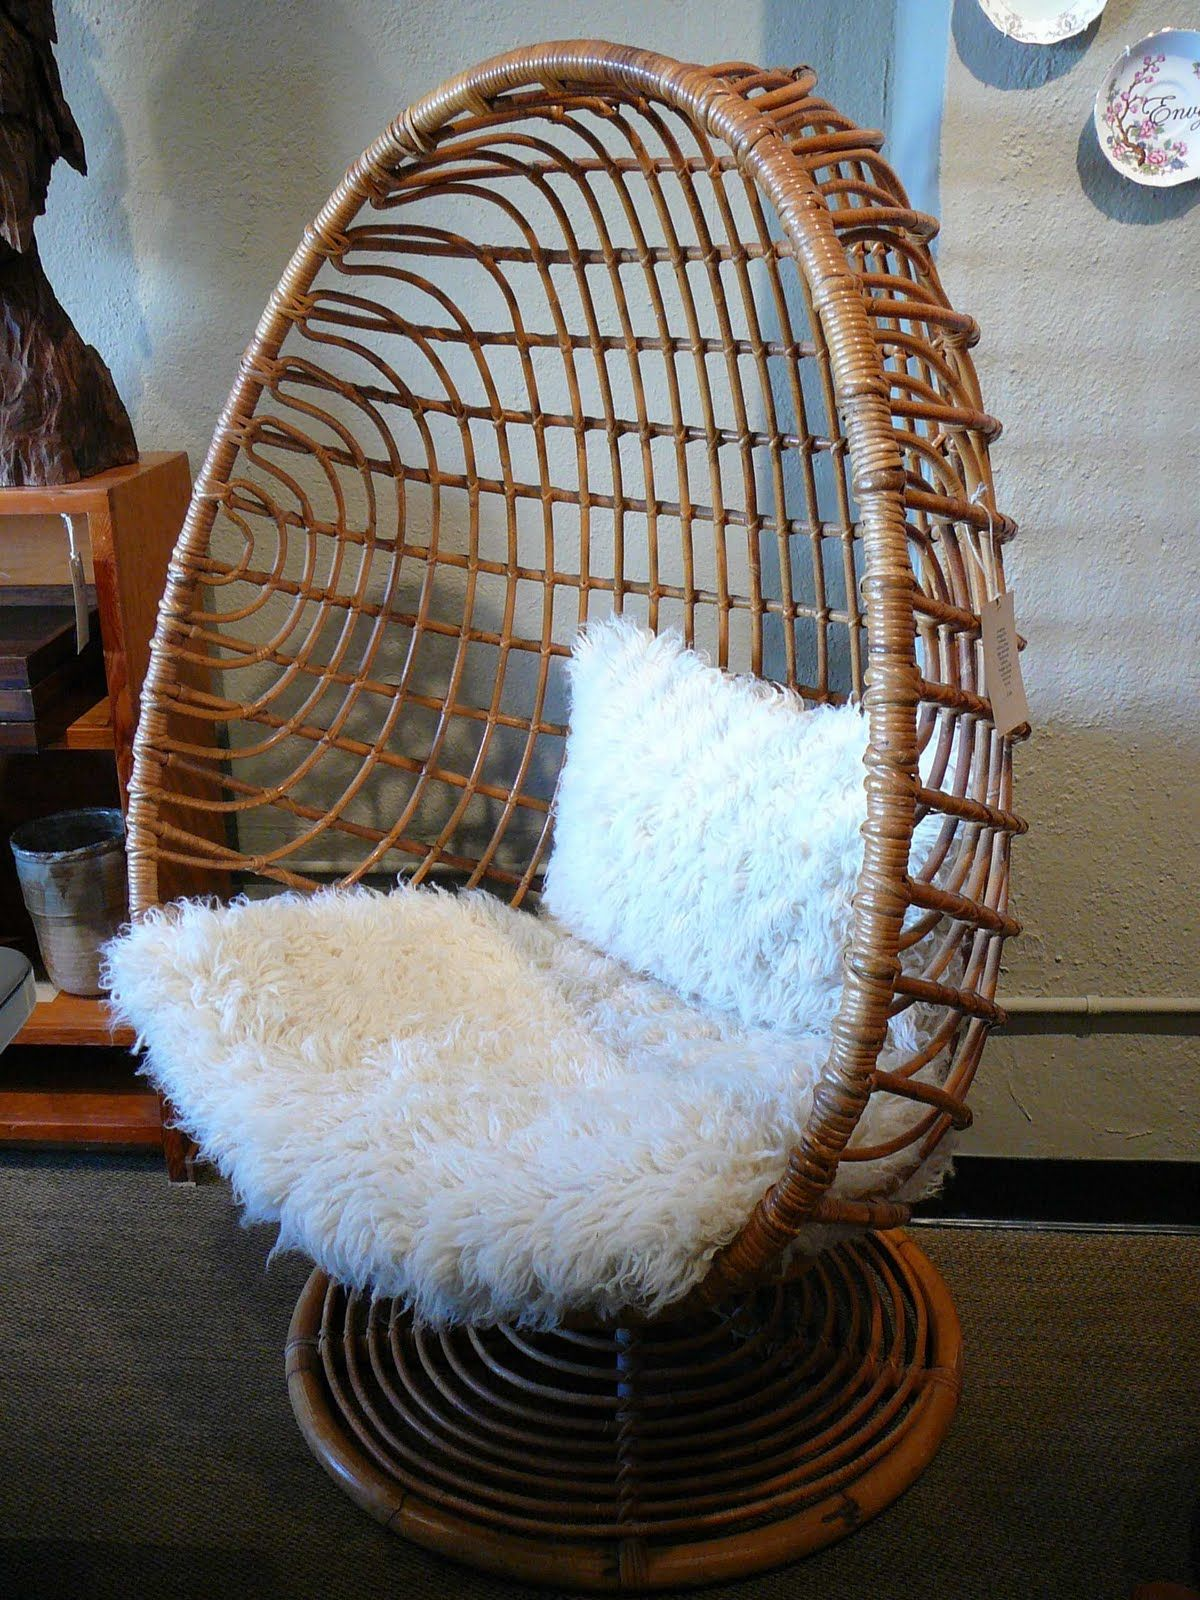 Wicker Egg Chairs For Sale 60 S Egg Chair It Looks Fuzzy Awesome House Ideas Papasan